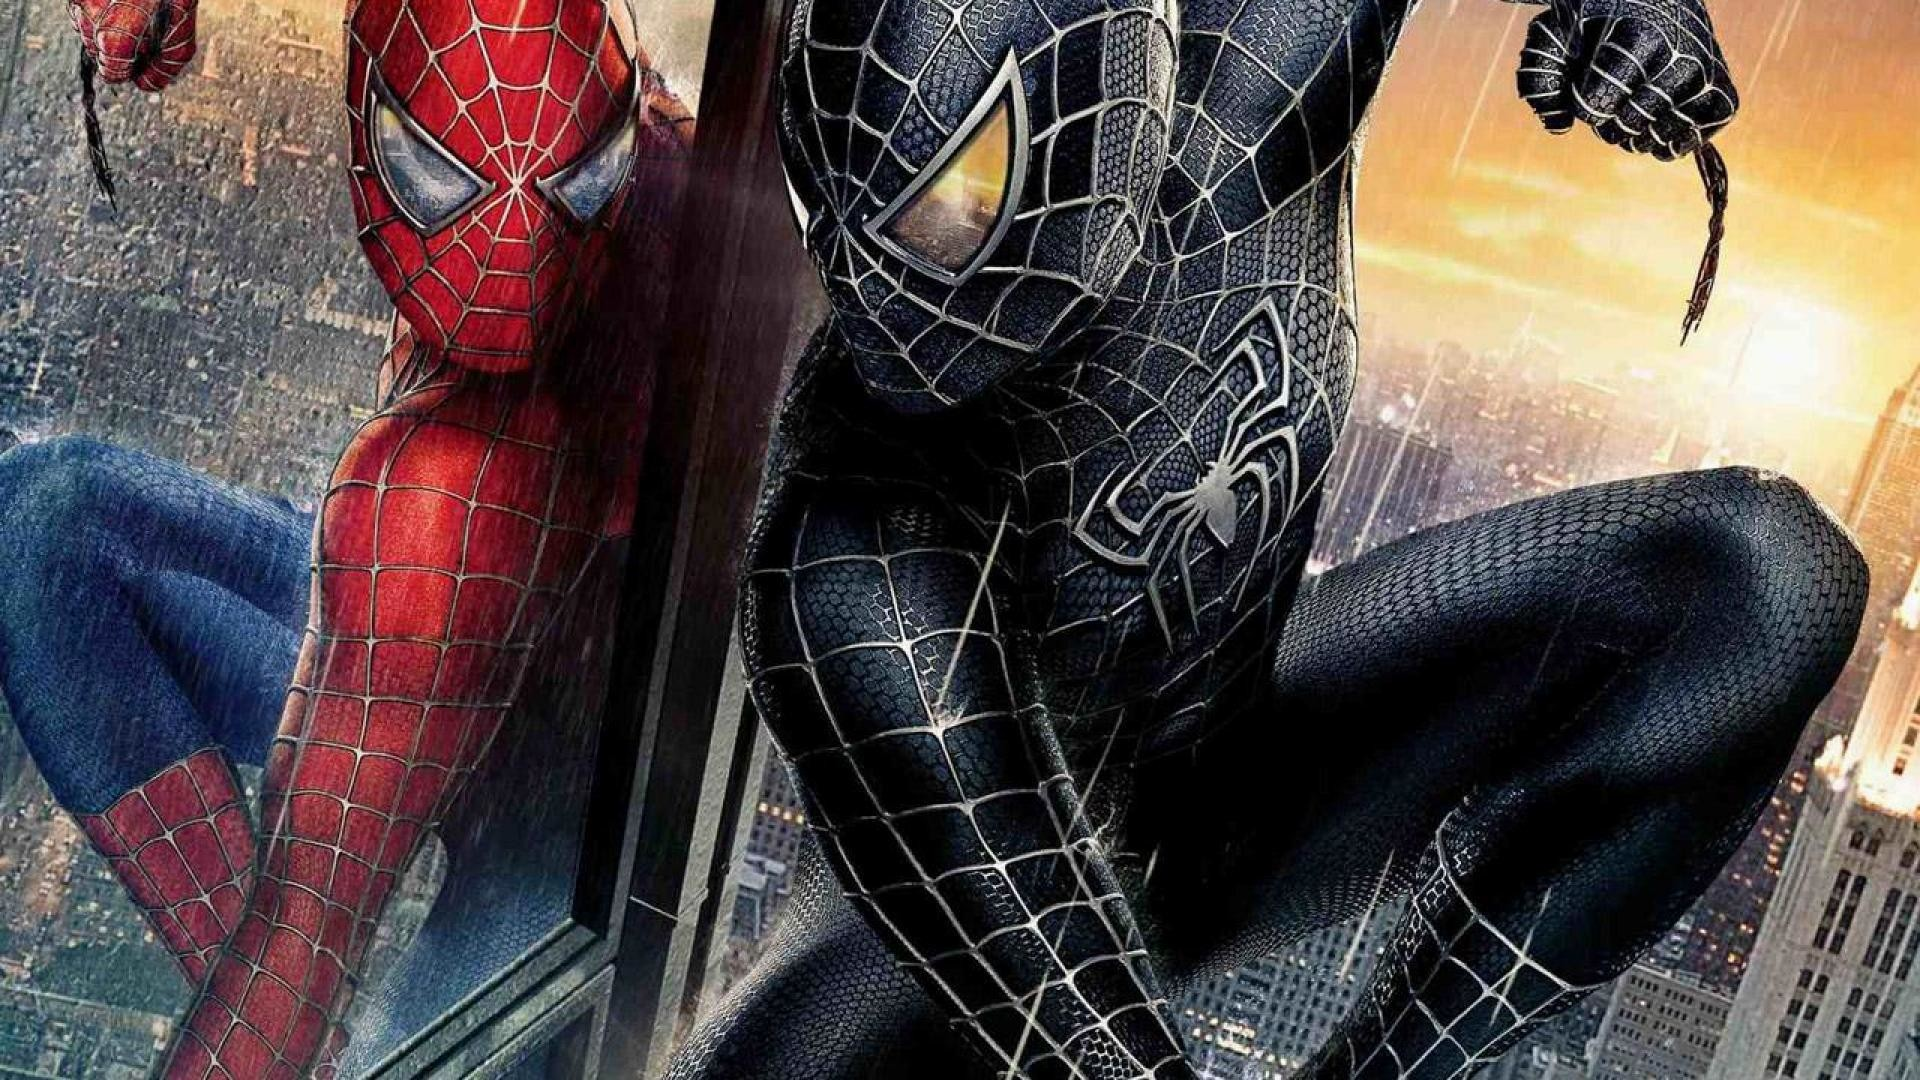 wallpaper.wiki-HD-Black-Spiderman-Iphone-Backgrounds-PIC-